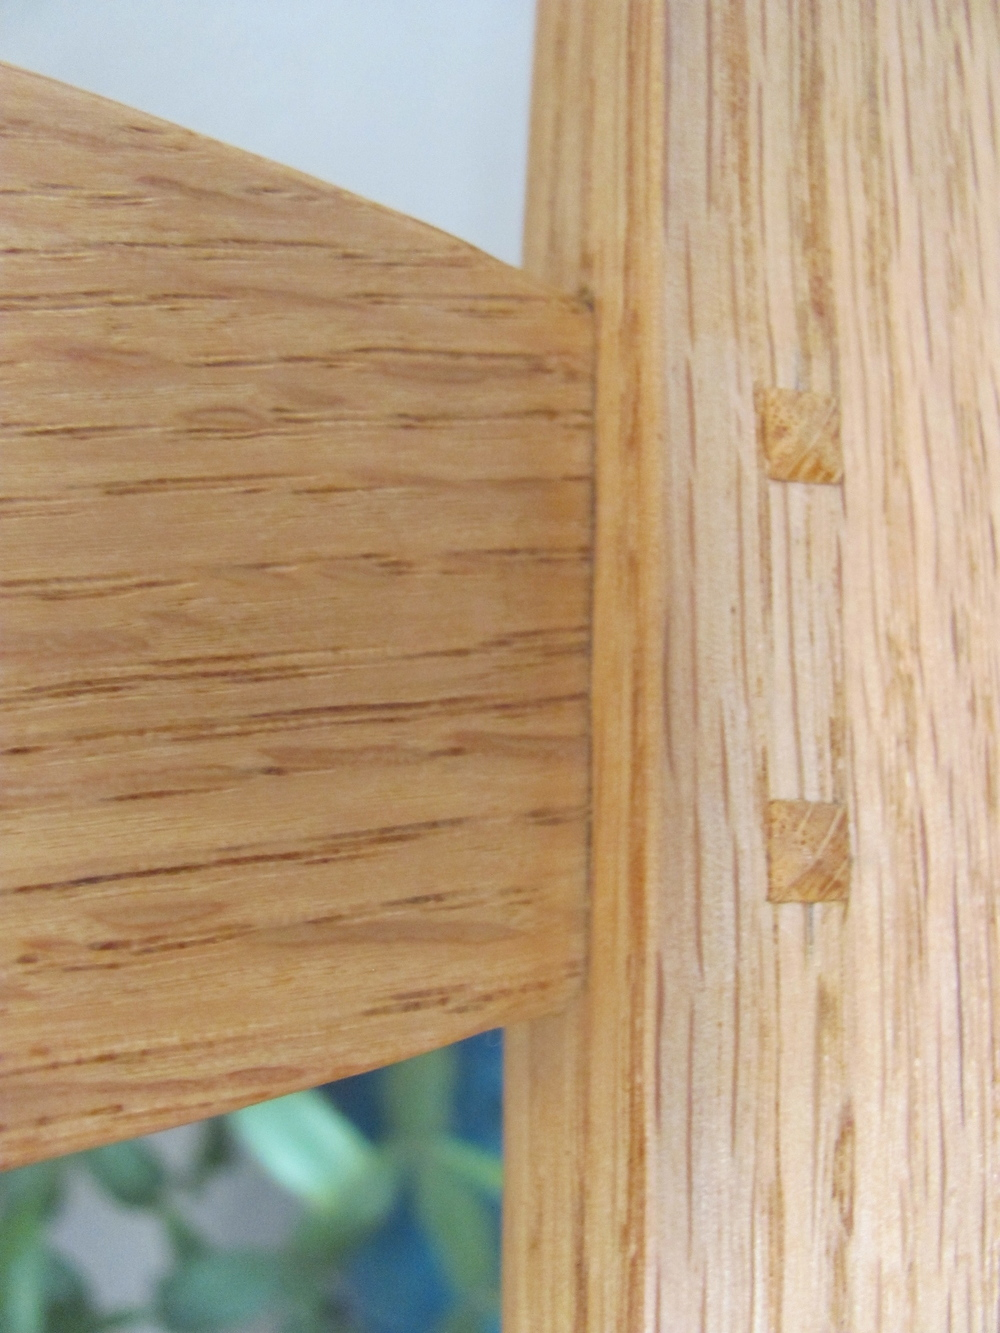 An extreme close-up of the workmanship. The slat tenons are hand fitted to very exacting tolerances (.2550 tenon into a .2500 mortise). They are 3/4 inch long and  pinned  with pyramid-shaped pins for decades of everyday use.